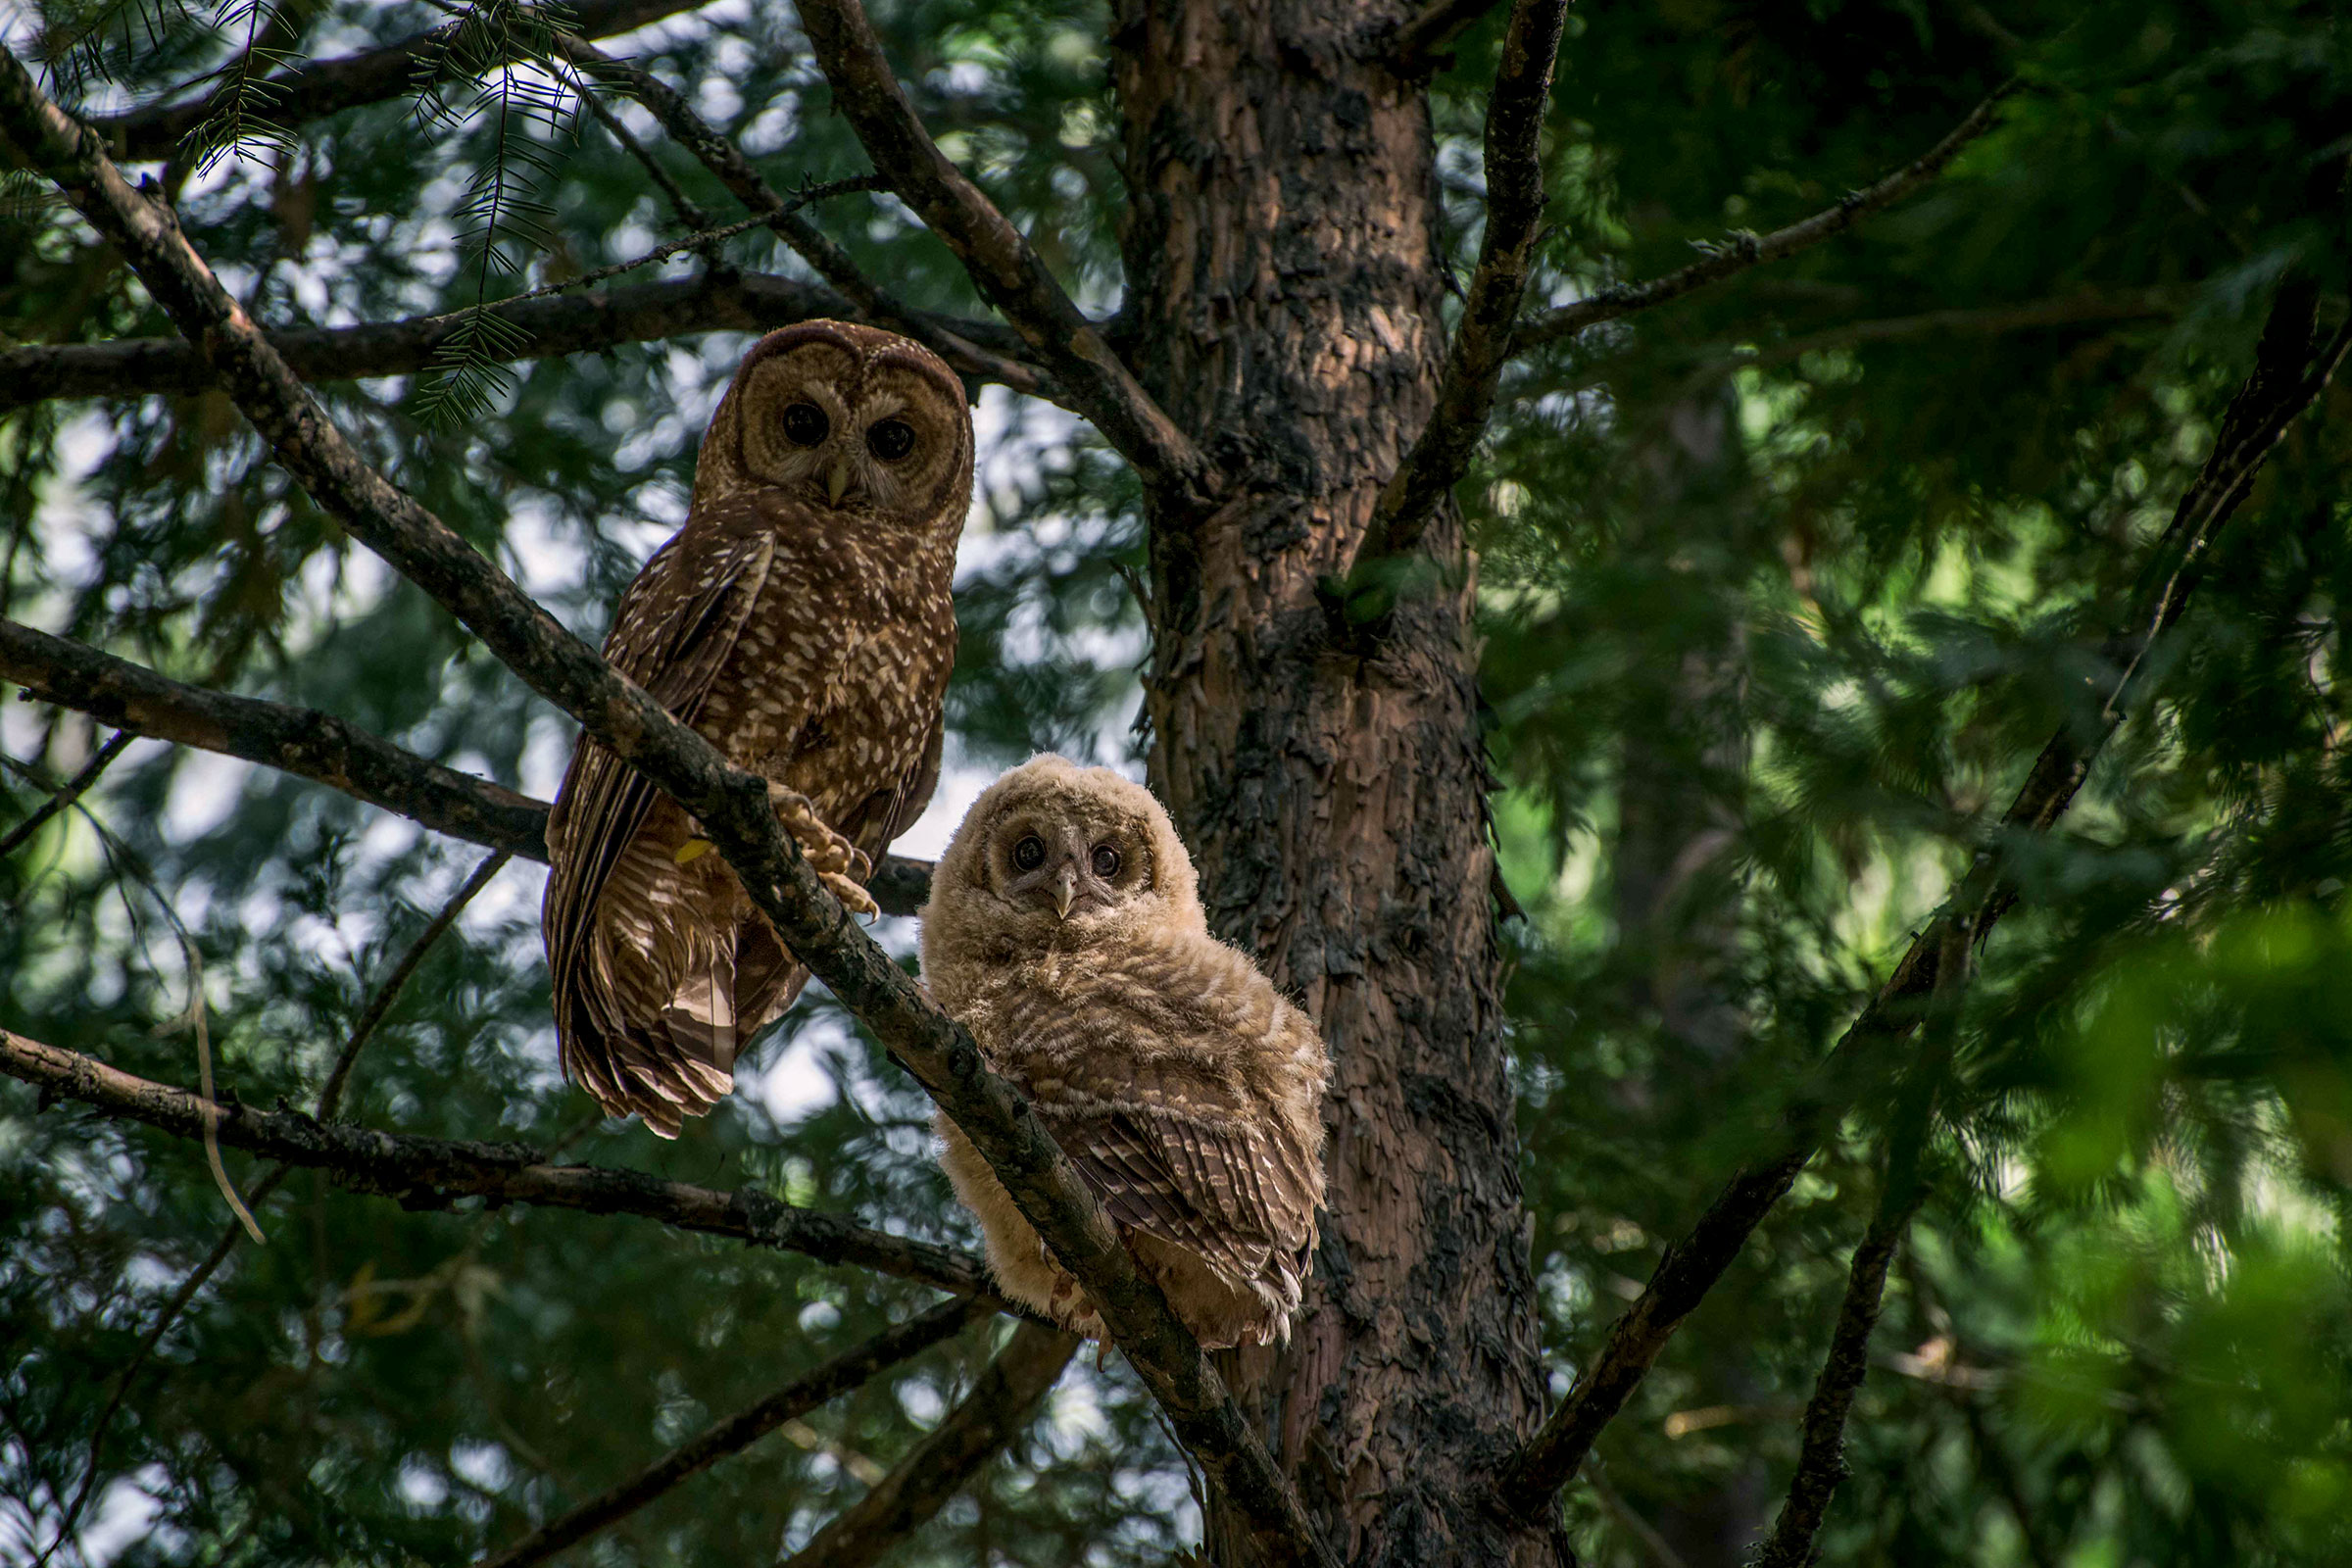 California Spotted Owls avoid large, intensely burned areas after fire, according to Gavin Jones's research. They rarely venture more than 300 feet into a severe-burn area. Danny Hofstadter